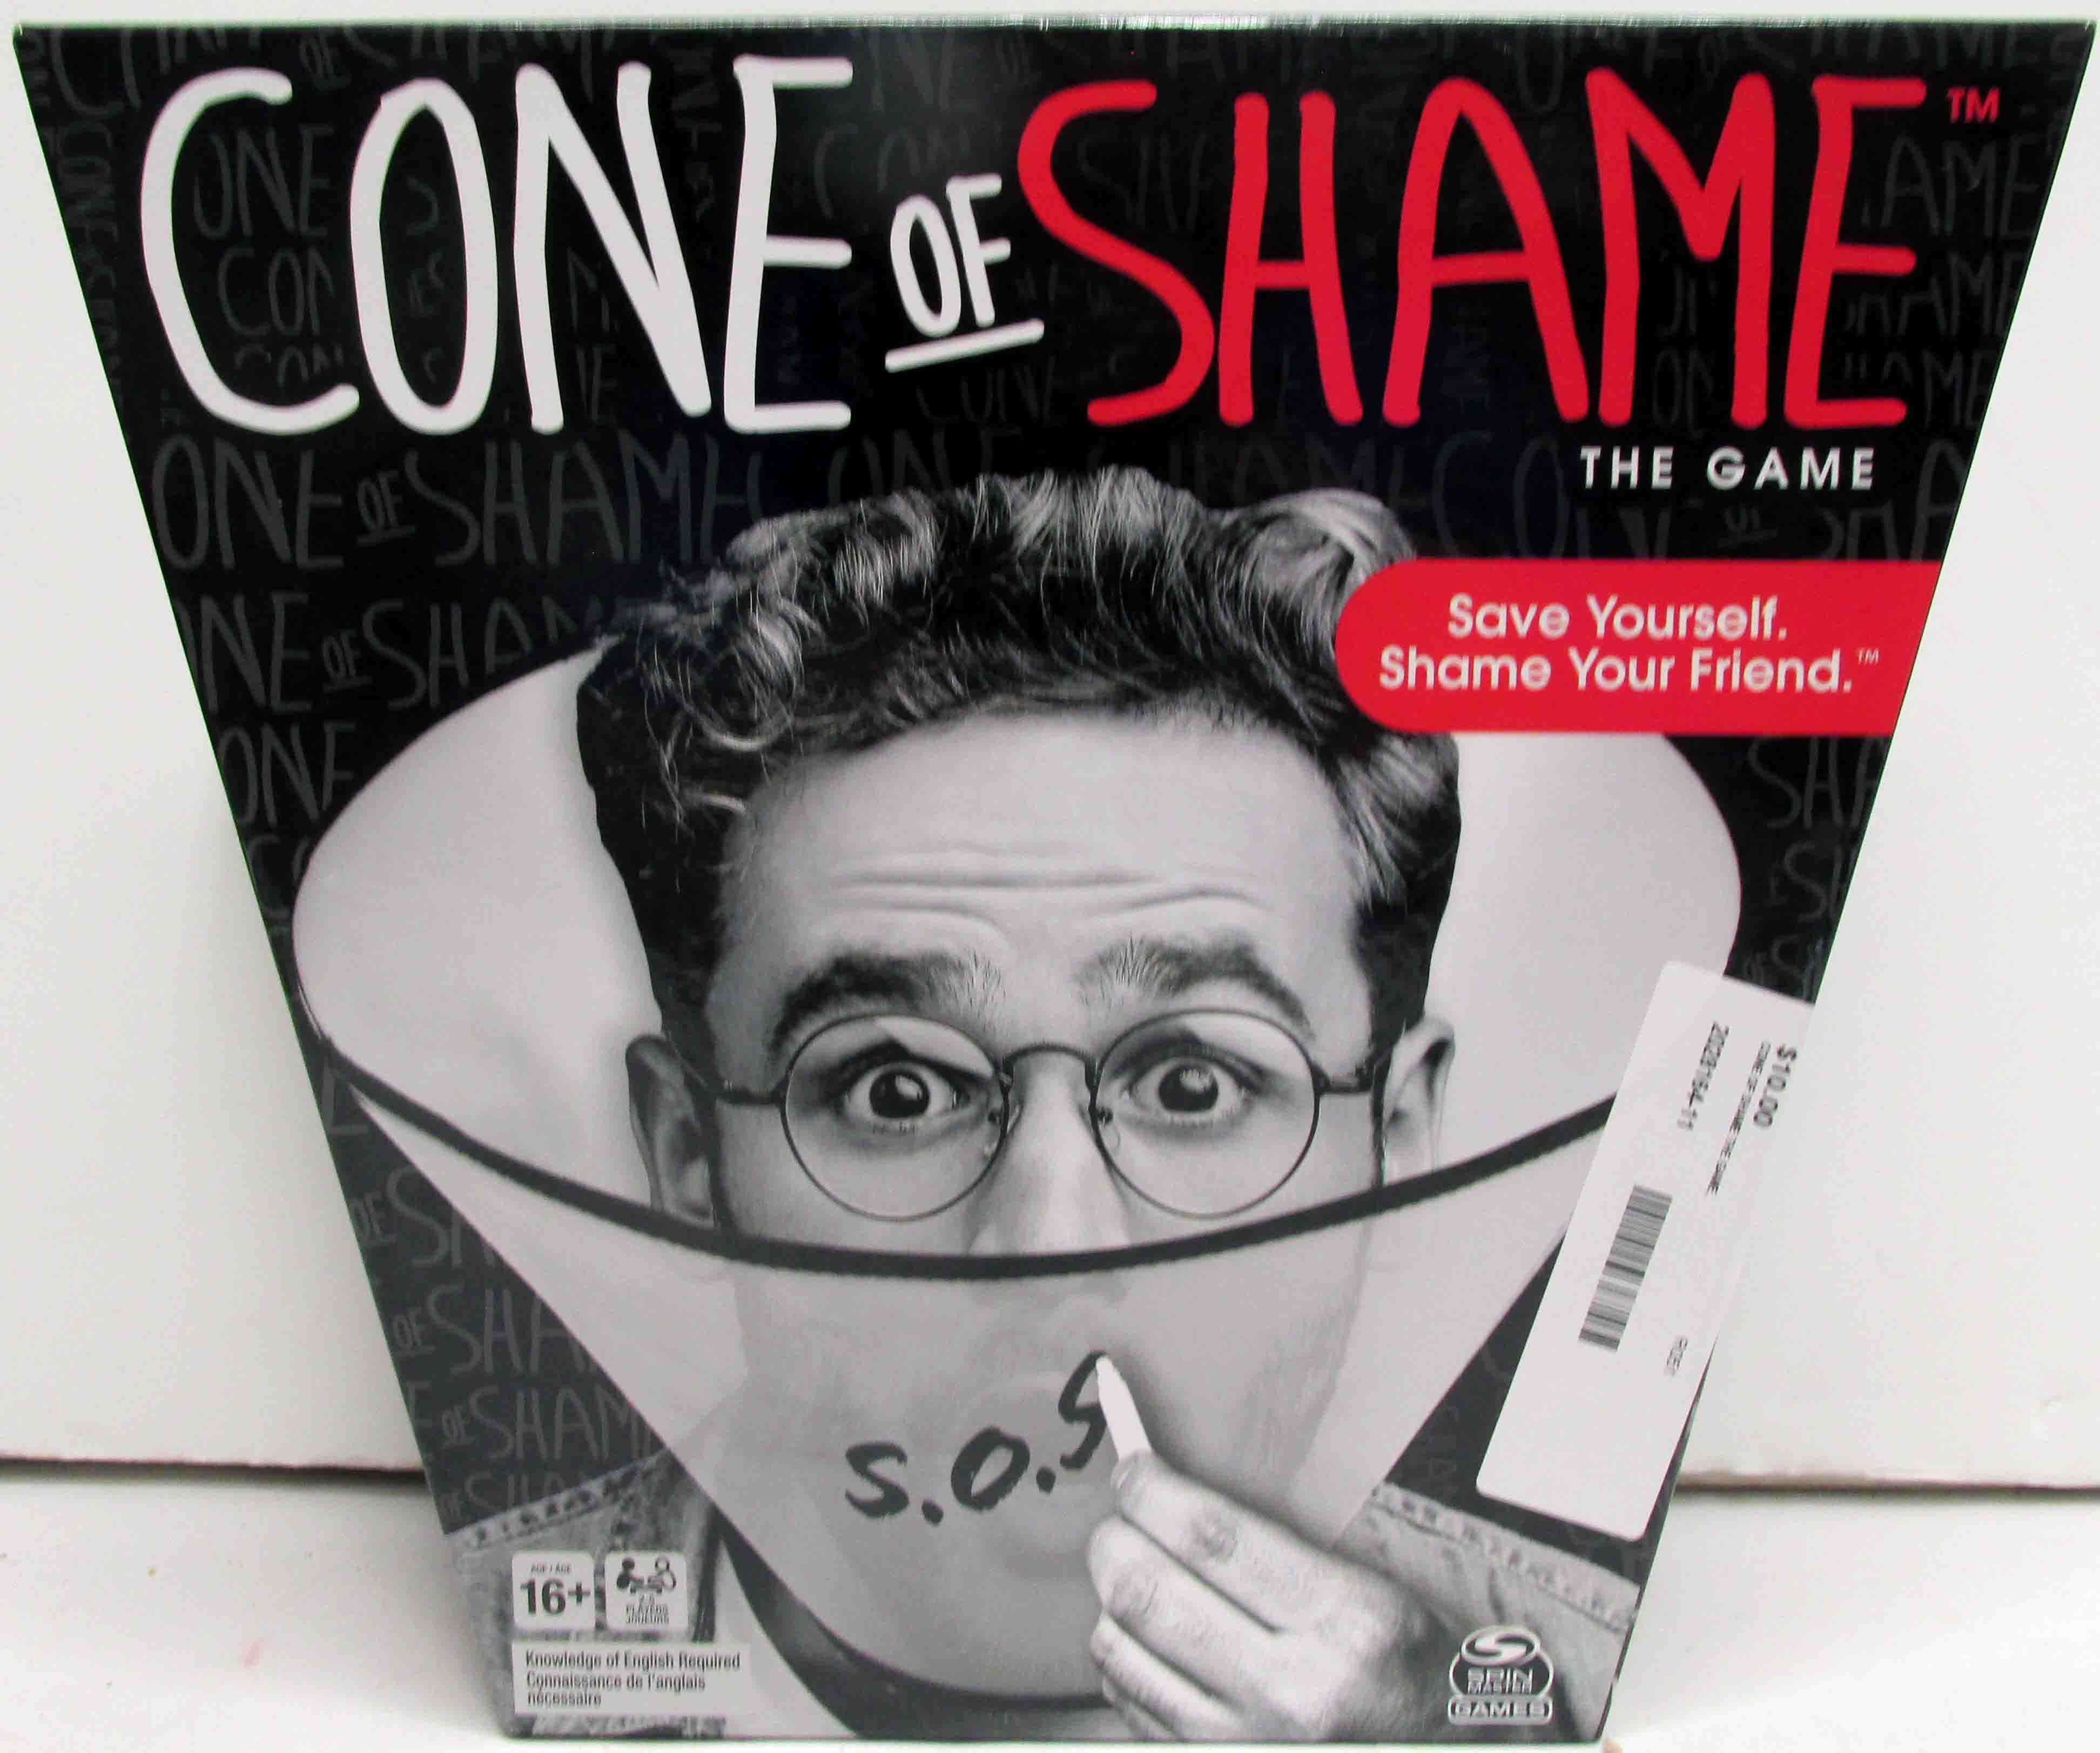 Cone of Shame The Game - NEW